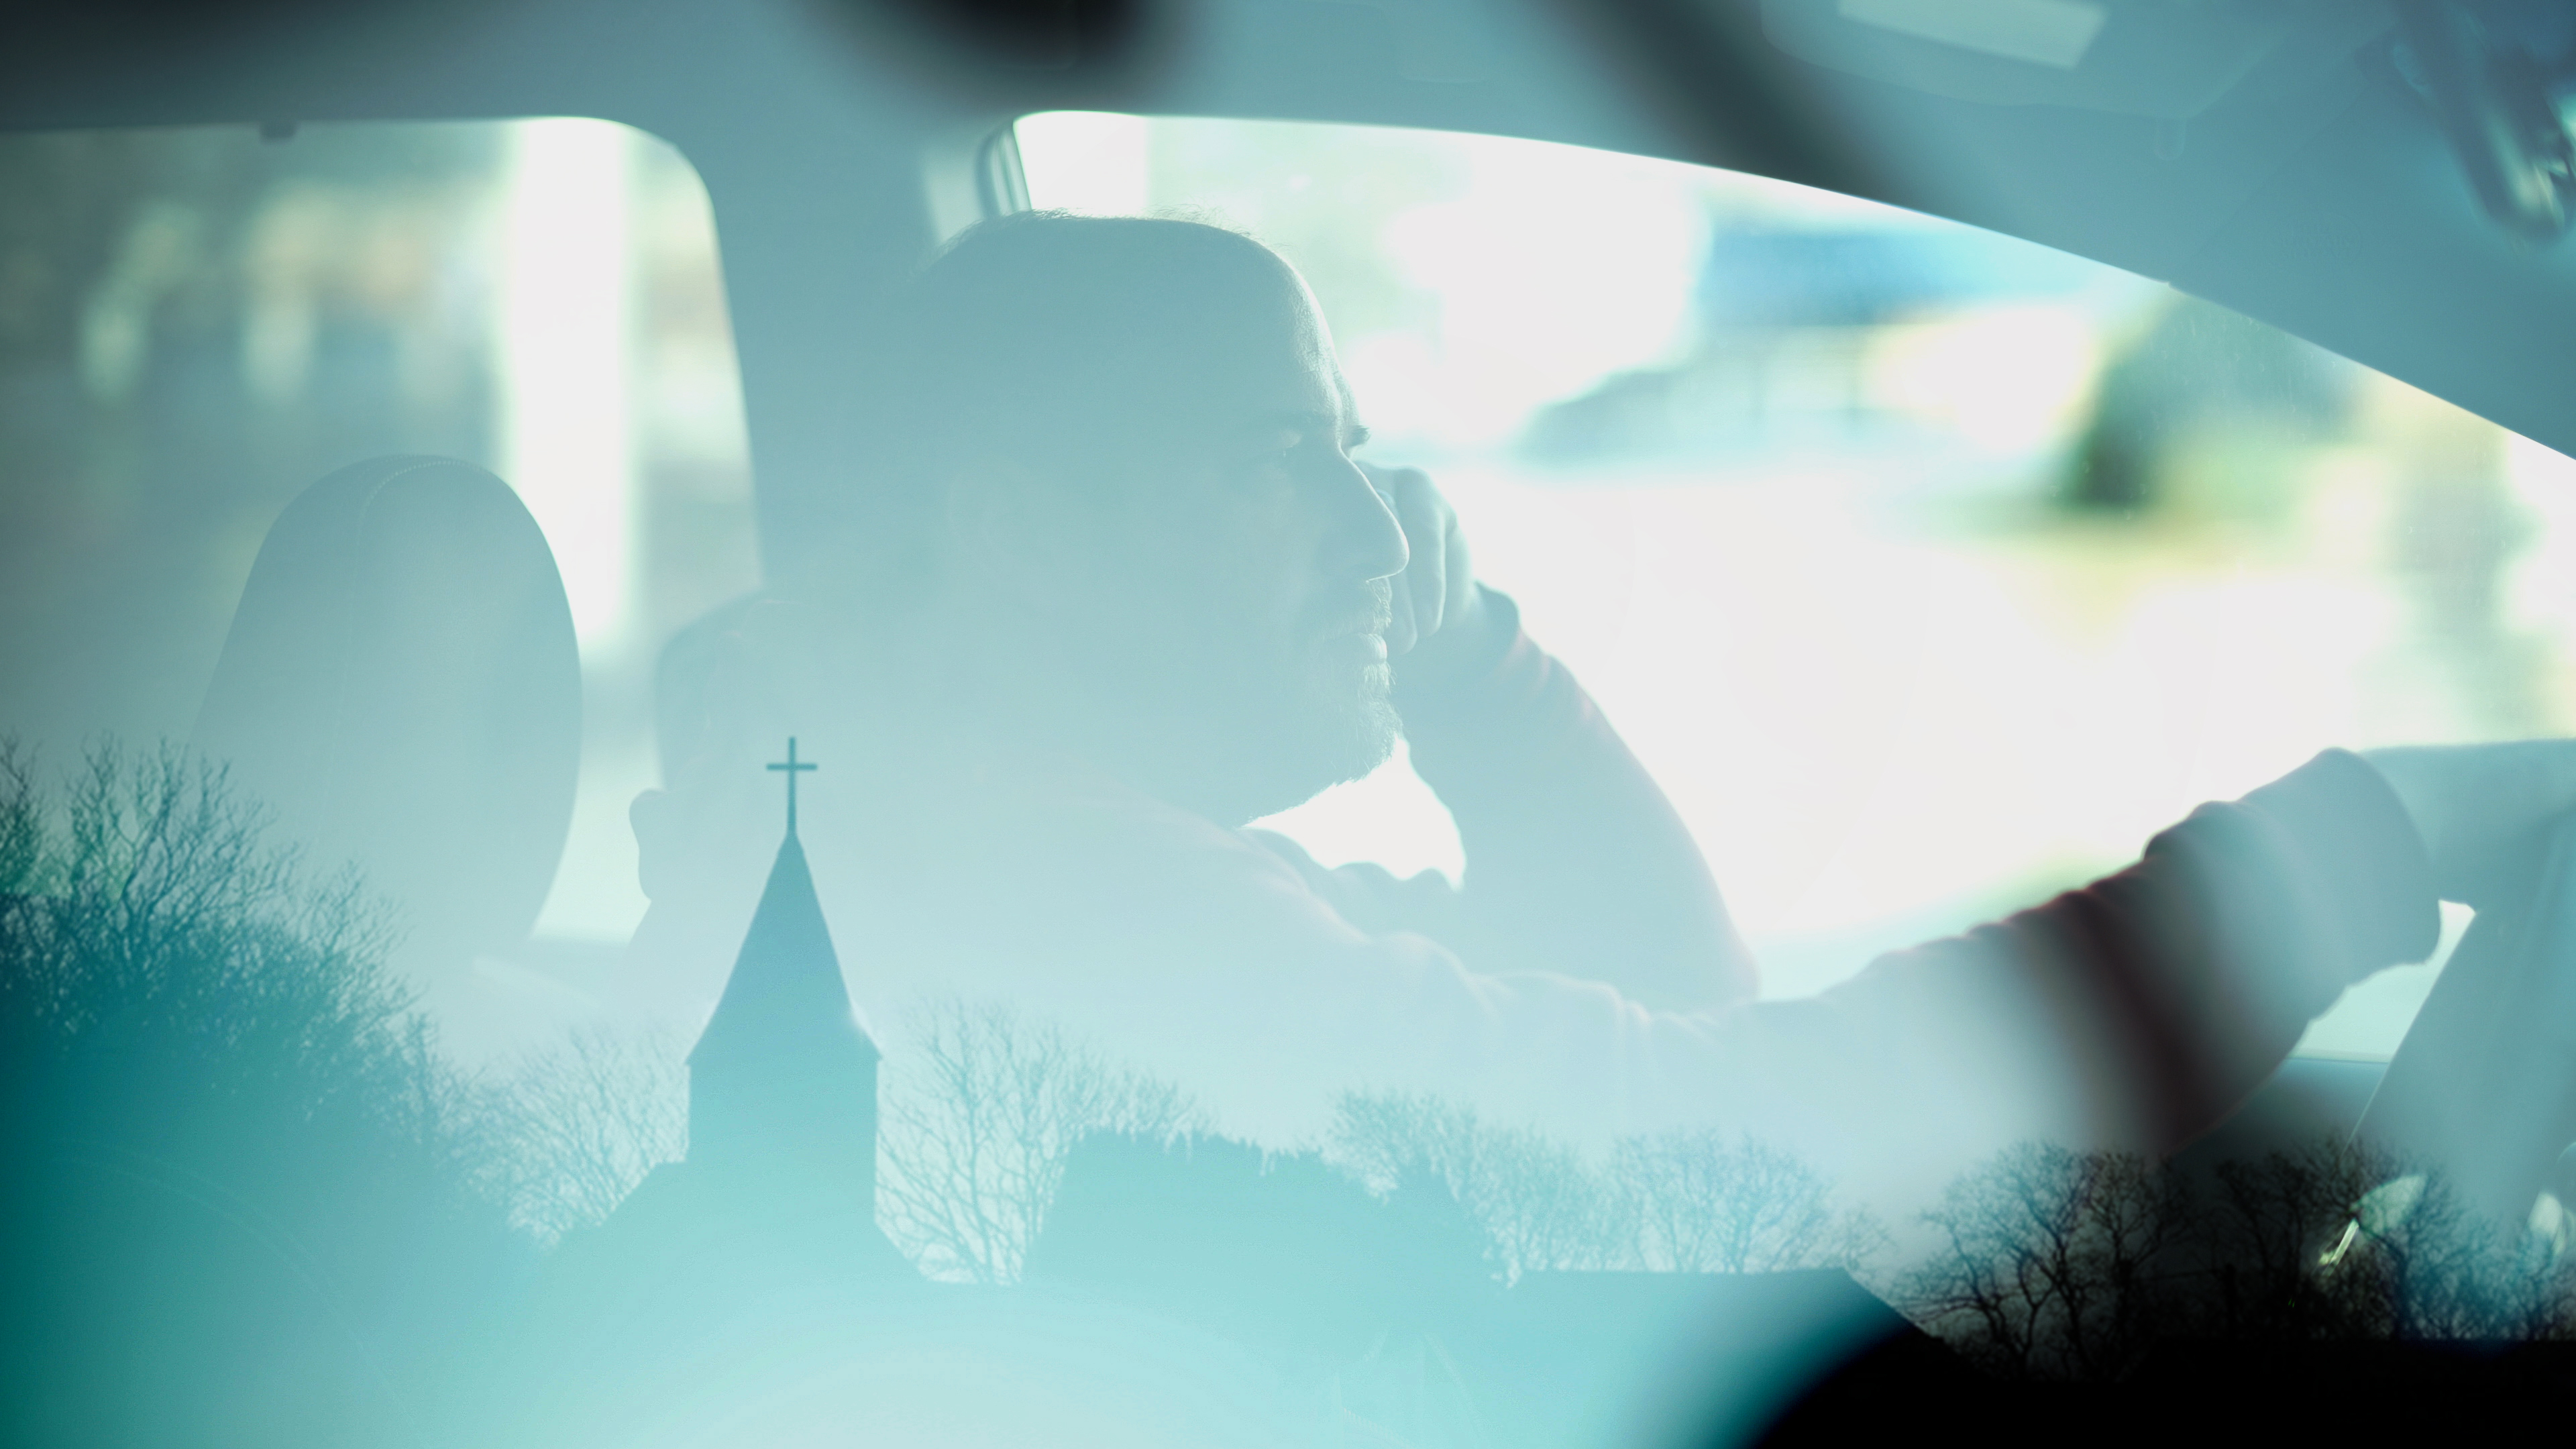 Musician David Bazan sitting in his car in a still from Strange Negotiations.